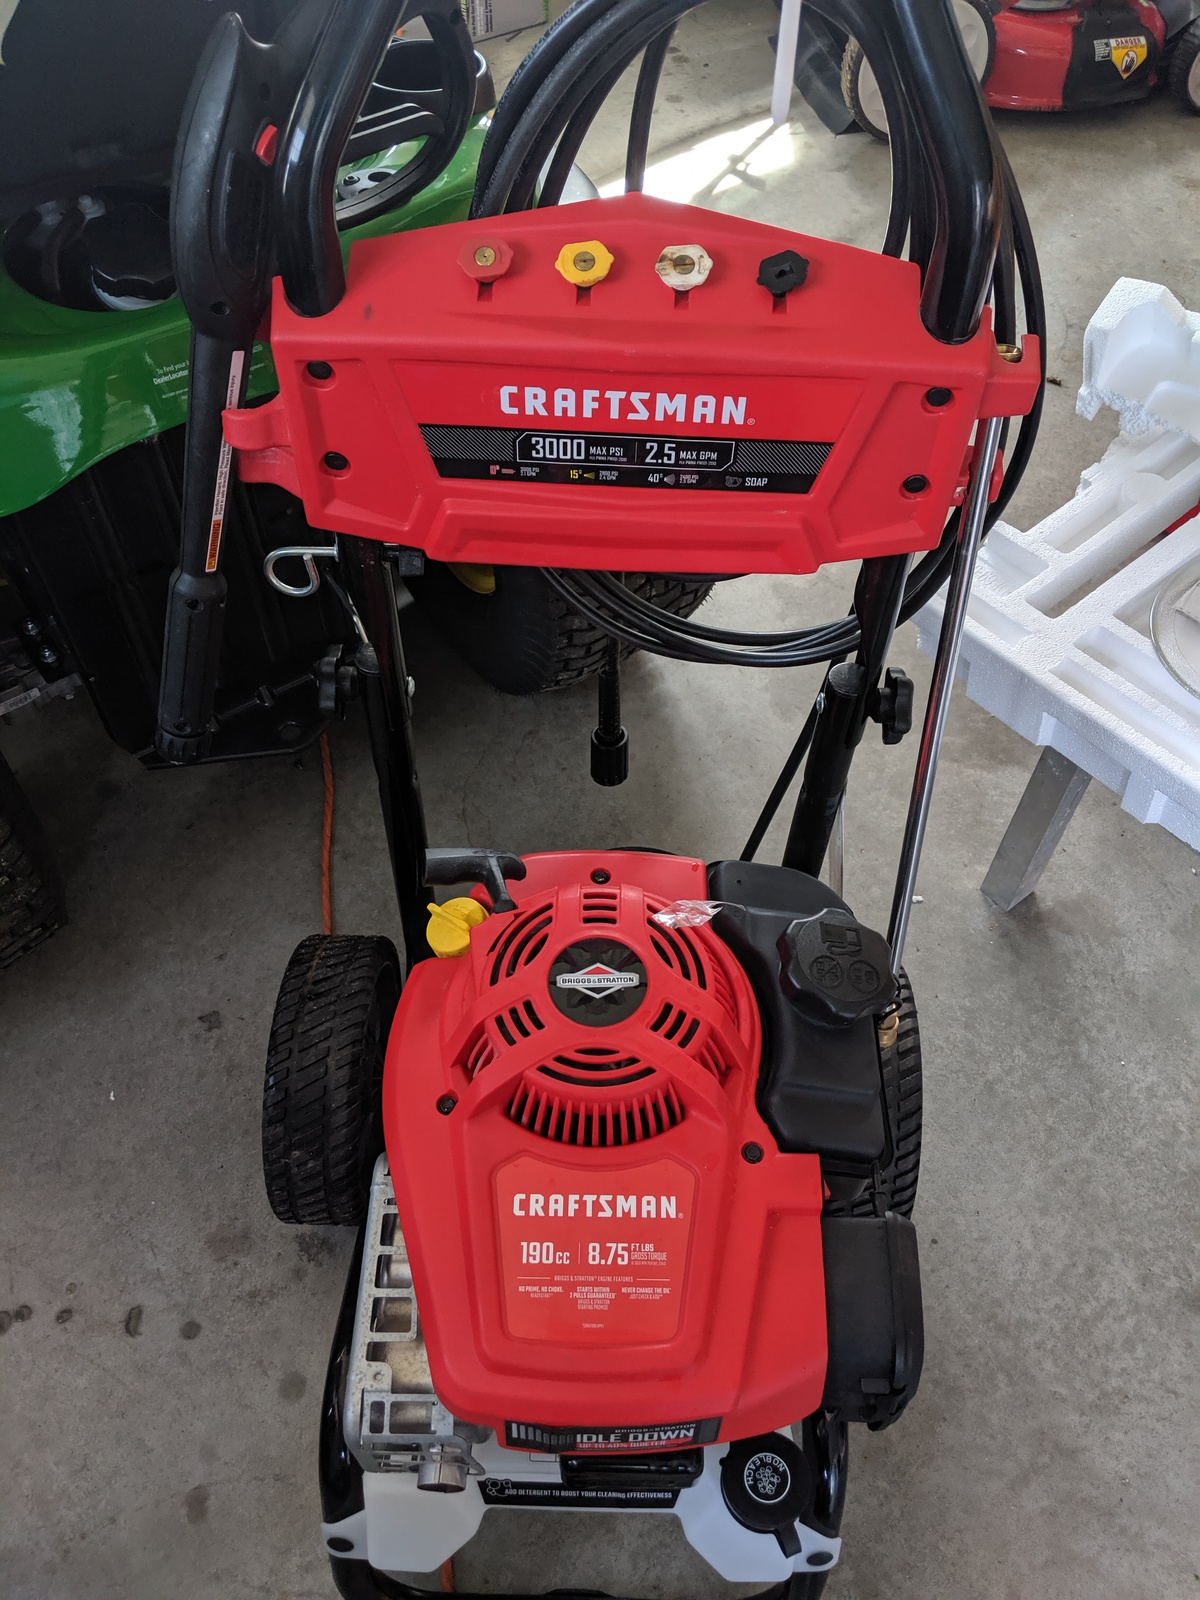 New CRAFTSMAN 3000-PSI 2 5-GPM Cold Water Gas Pressure Washer with Briggs